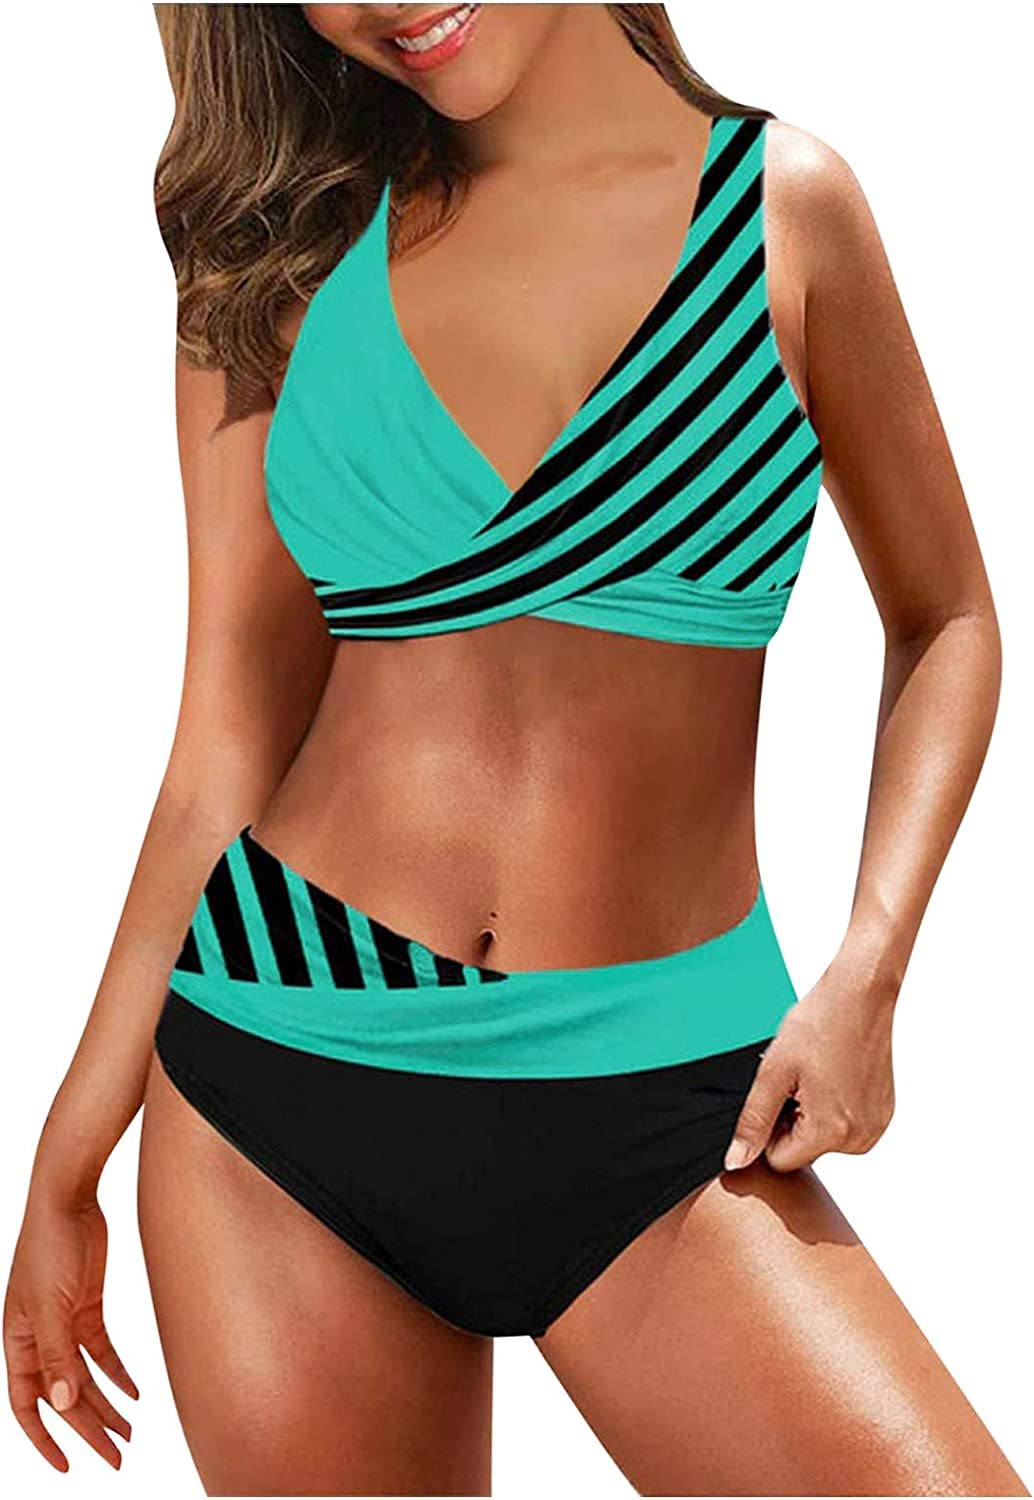 BEUU Sexy Swimsuits for Women Tummy Control Swimwear Summer Athletic Two Piece Tankini Boy Shorts Bathing Suits